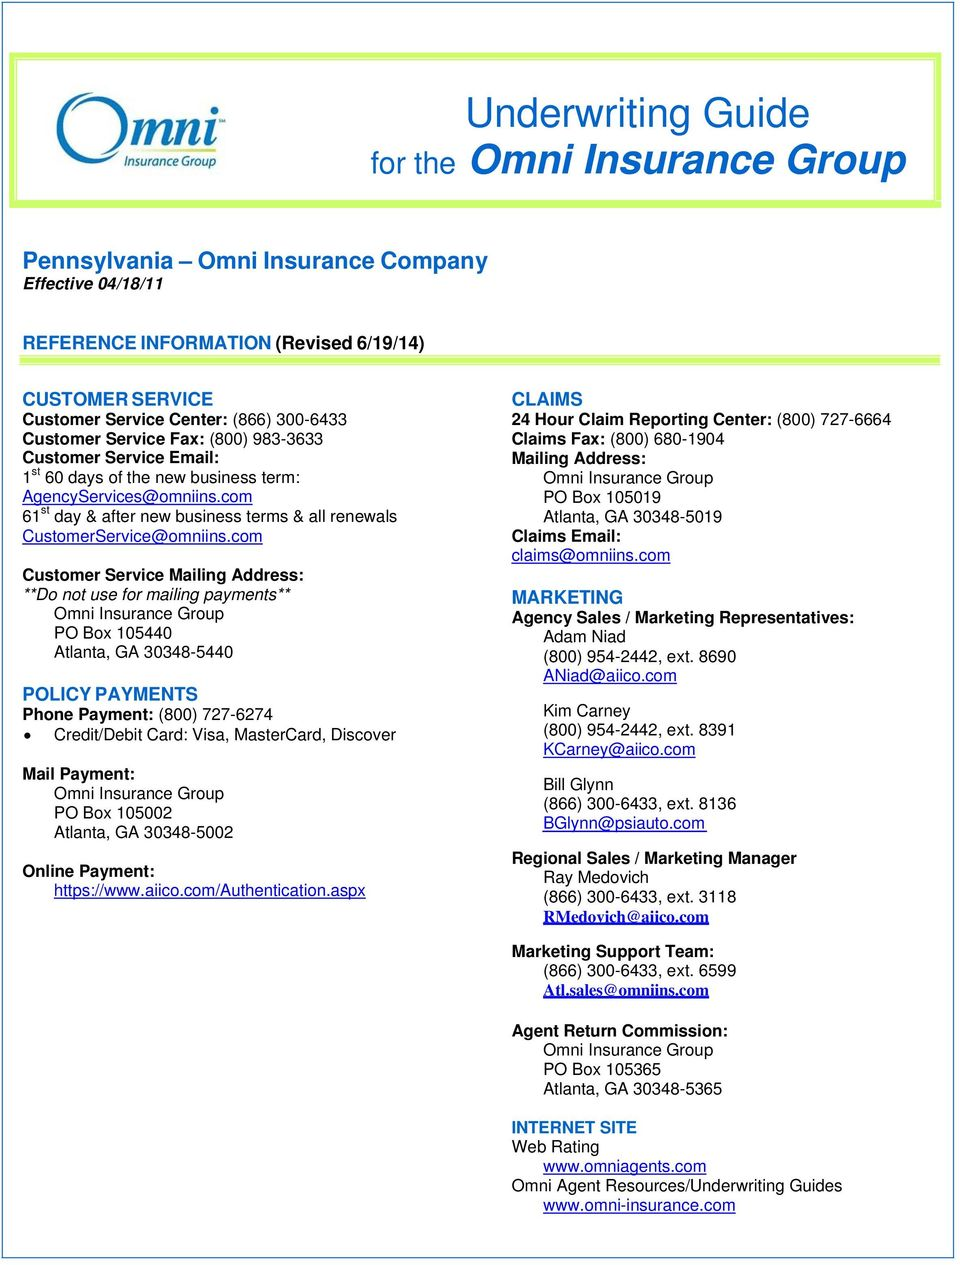 com 61 st day & after new business terms & all renewals  [emailprotected]